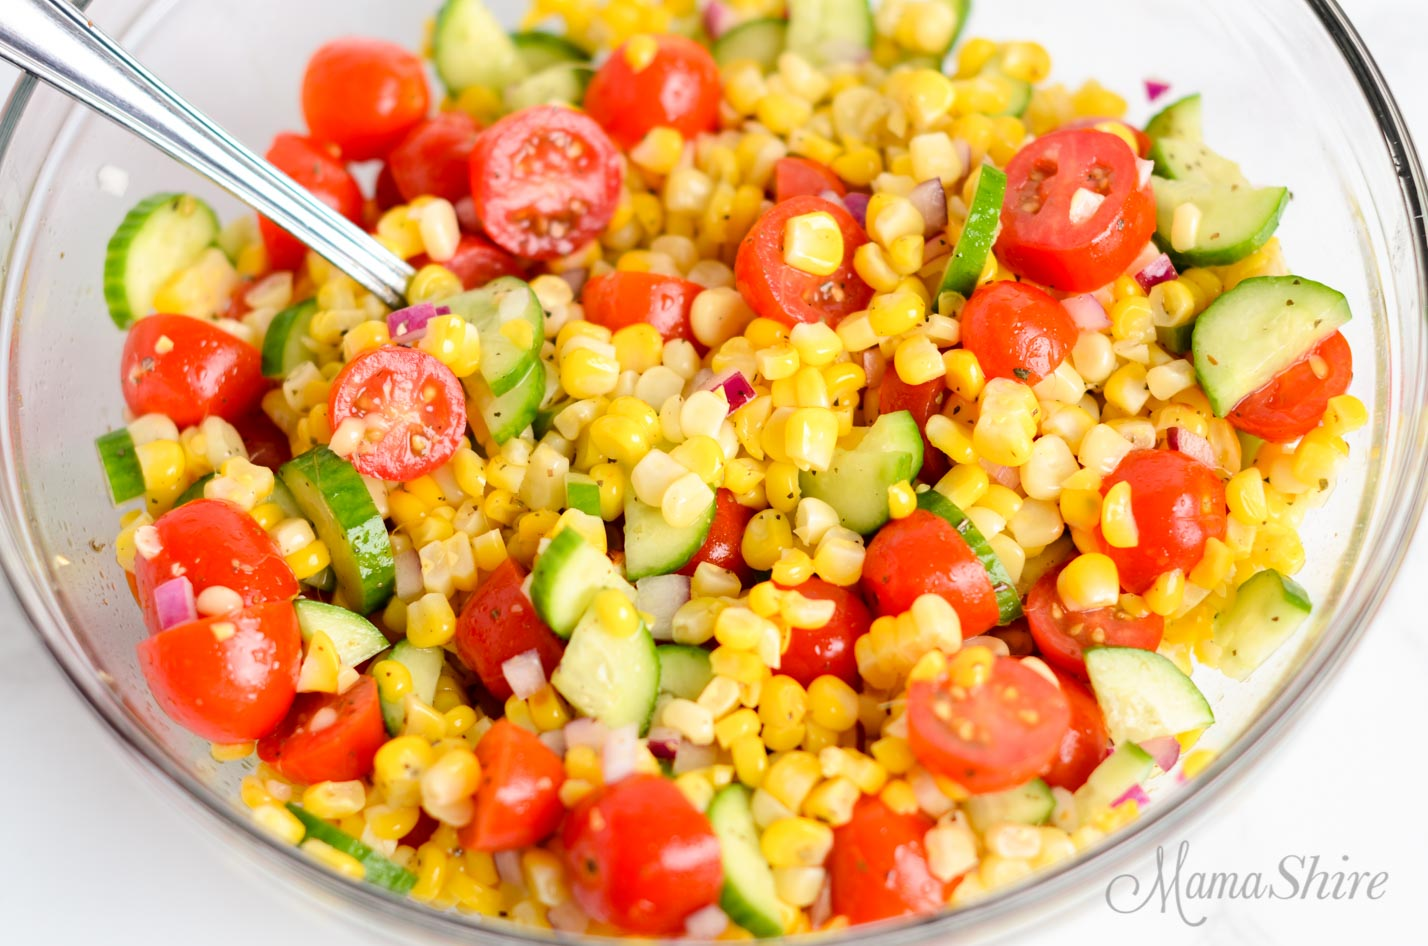 A serving bowl with corn salad that's naturally gluten-free with mini cucumbers and tomatoes.